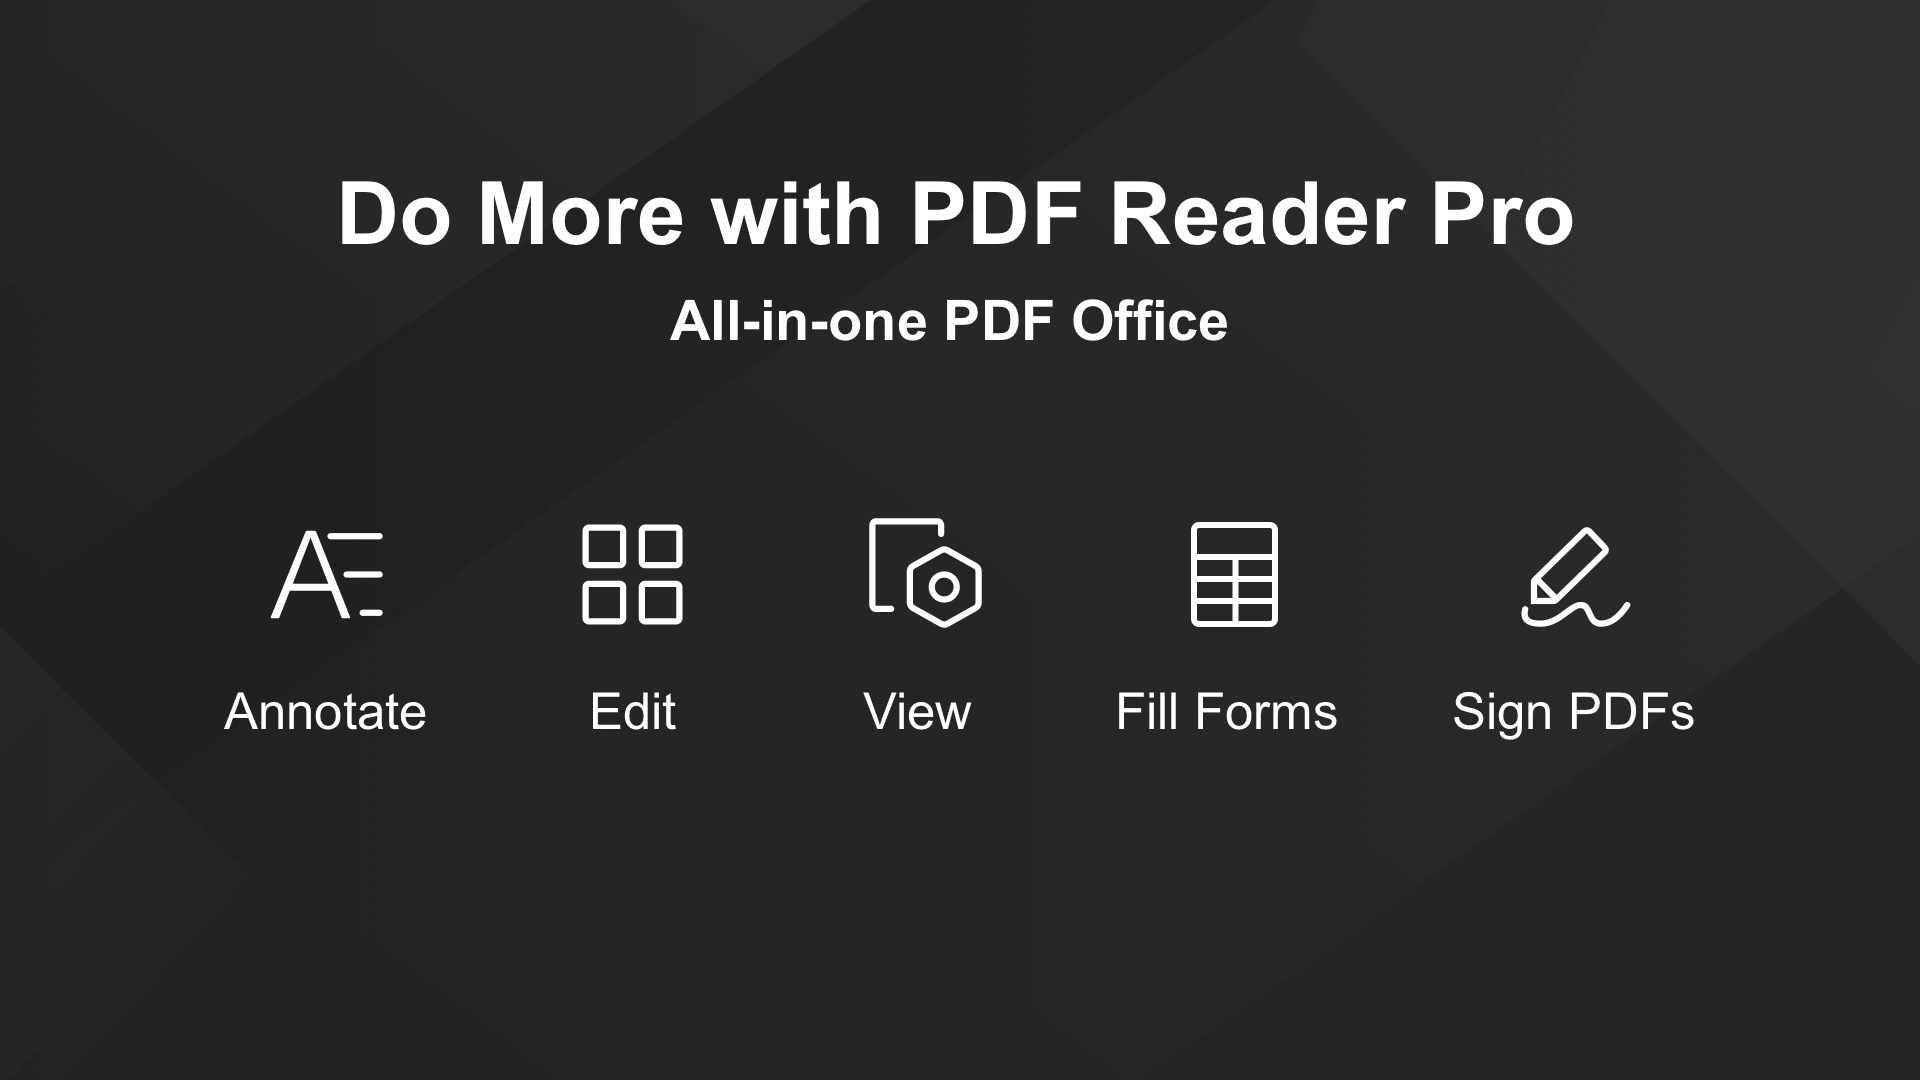 Get PDF Reader Pro - Annotate, Edit, View & Fill Forms - Microsoft Store